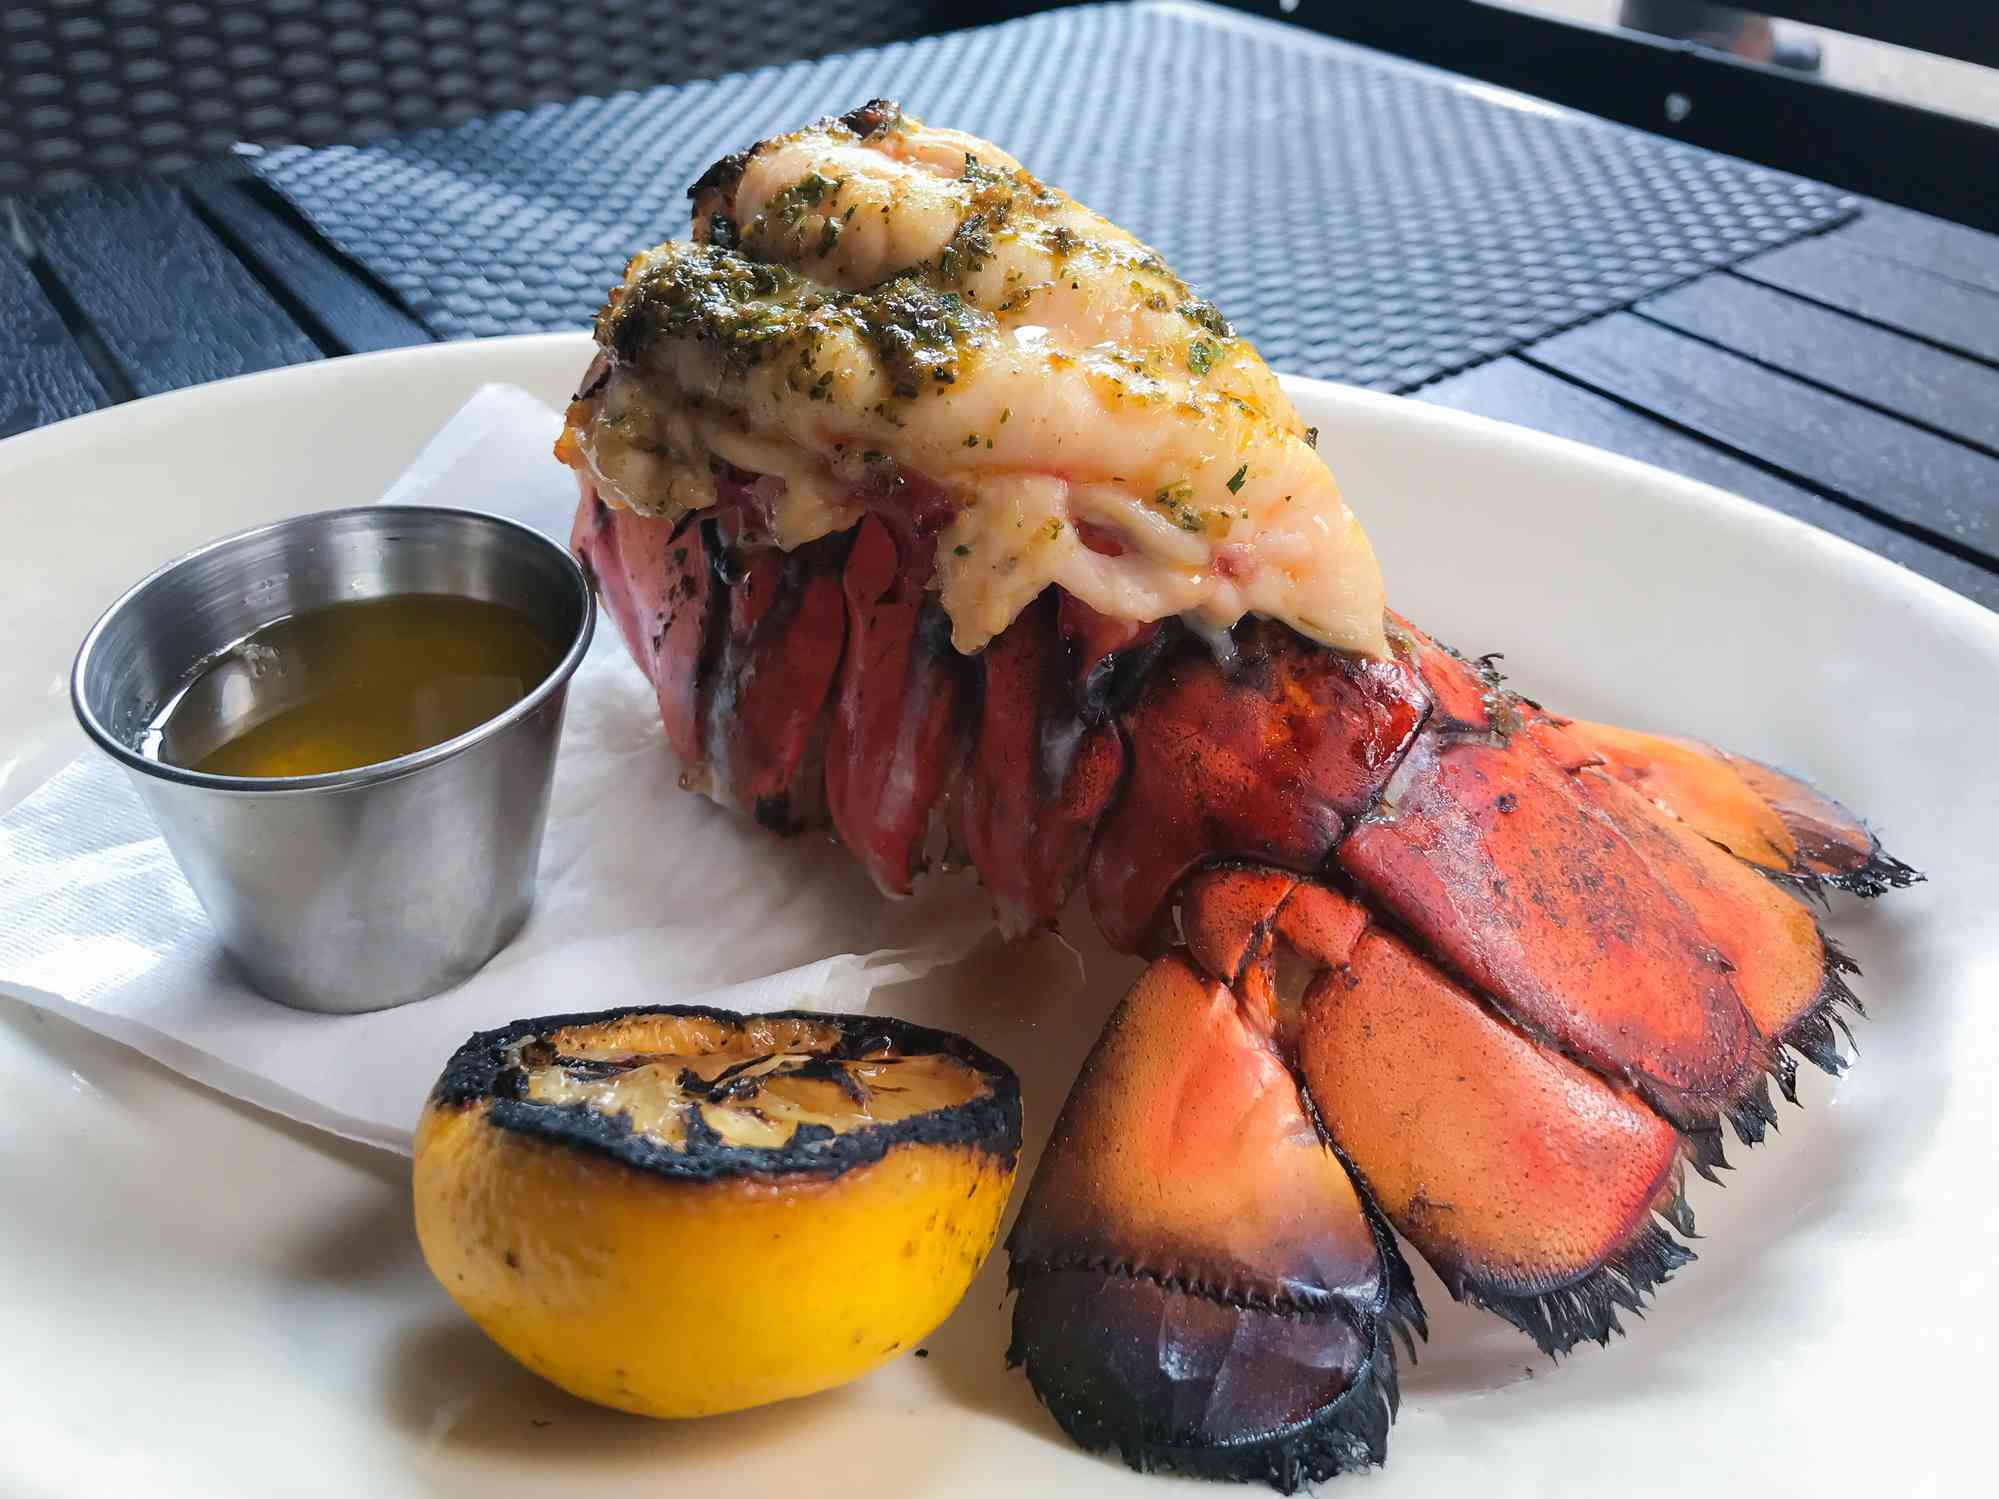 Grilled Lobster Tail on a plate with melted putter and grilled lemon